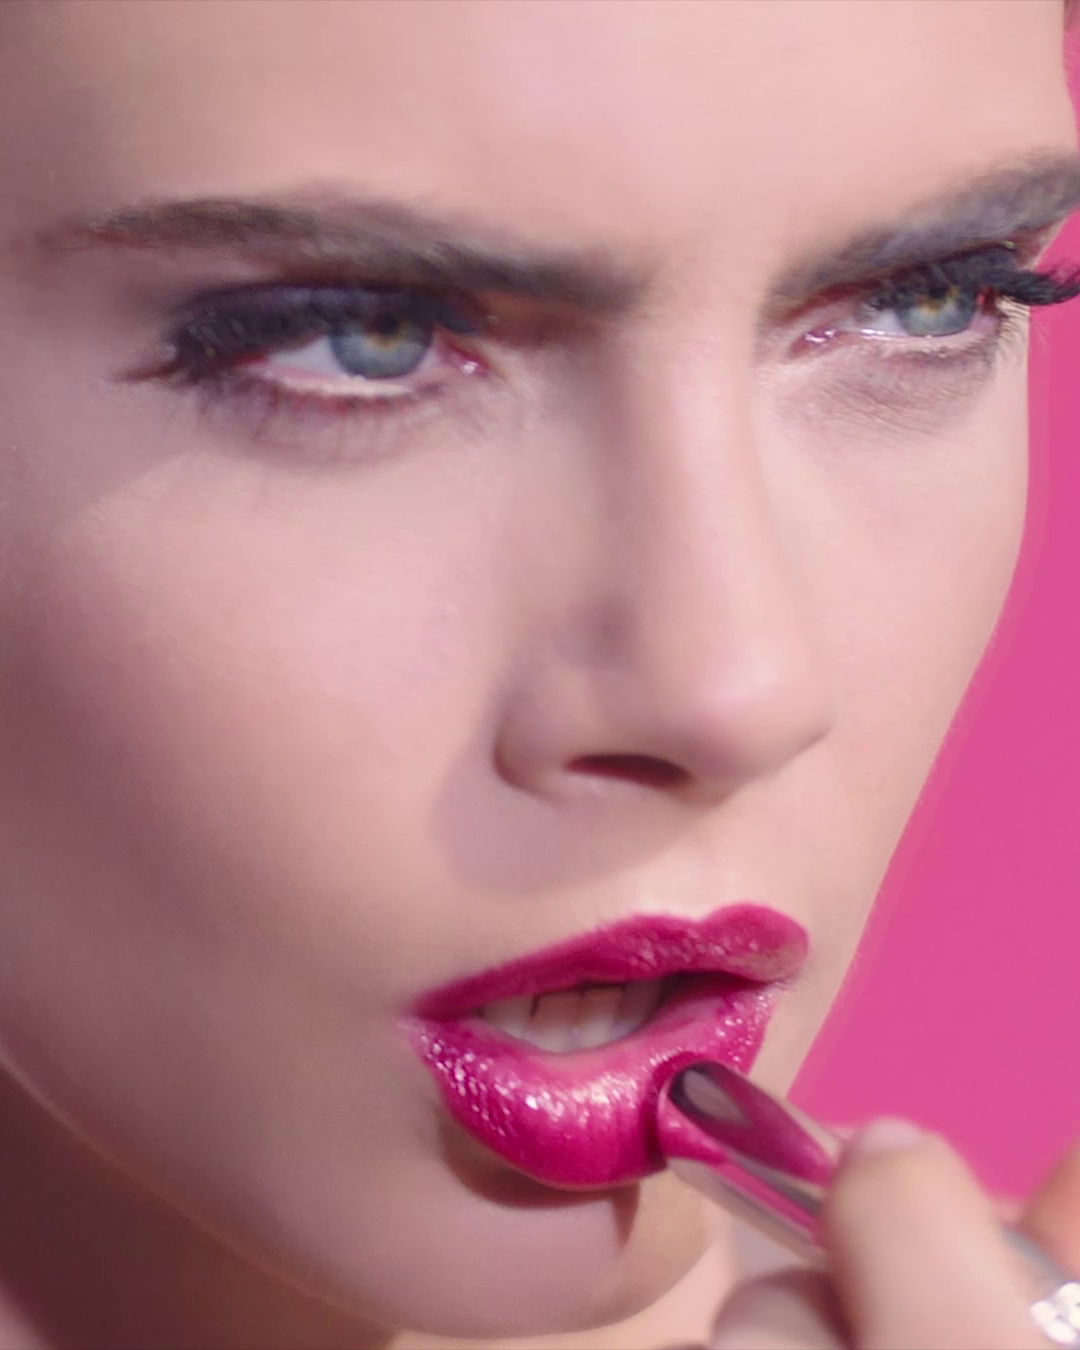 Be Dior & Be Pink with Dior Addict Stellar Shine, the next-generation hydrating lipstick. Color becomes an attitude and shine, a manifesto. #dioraddictstellarshine #bediorbepink